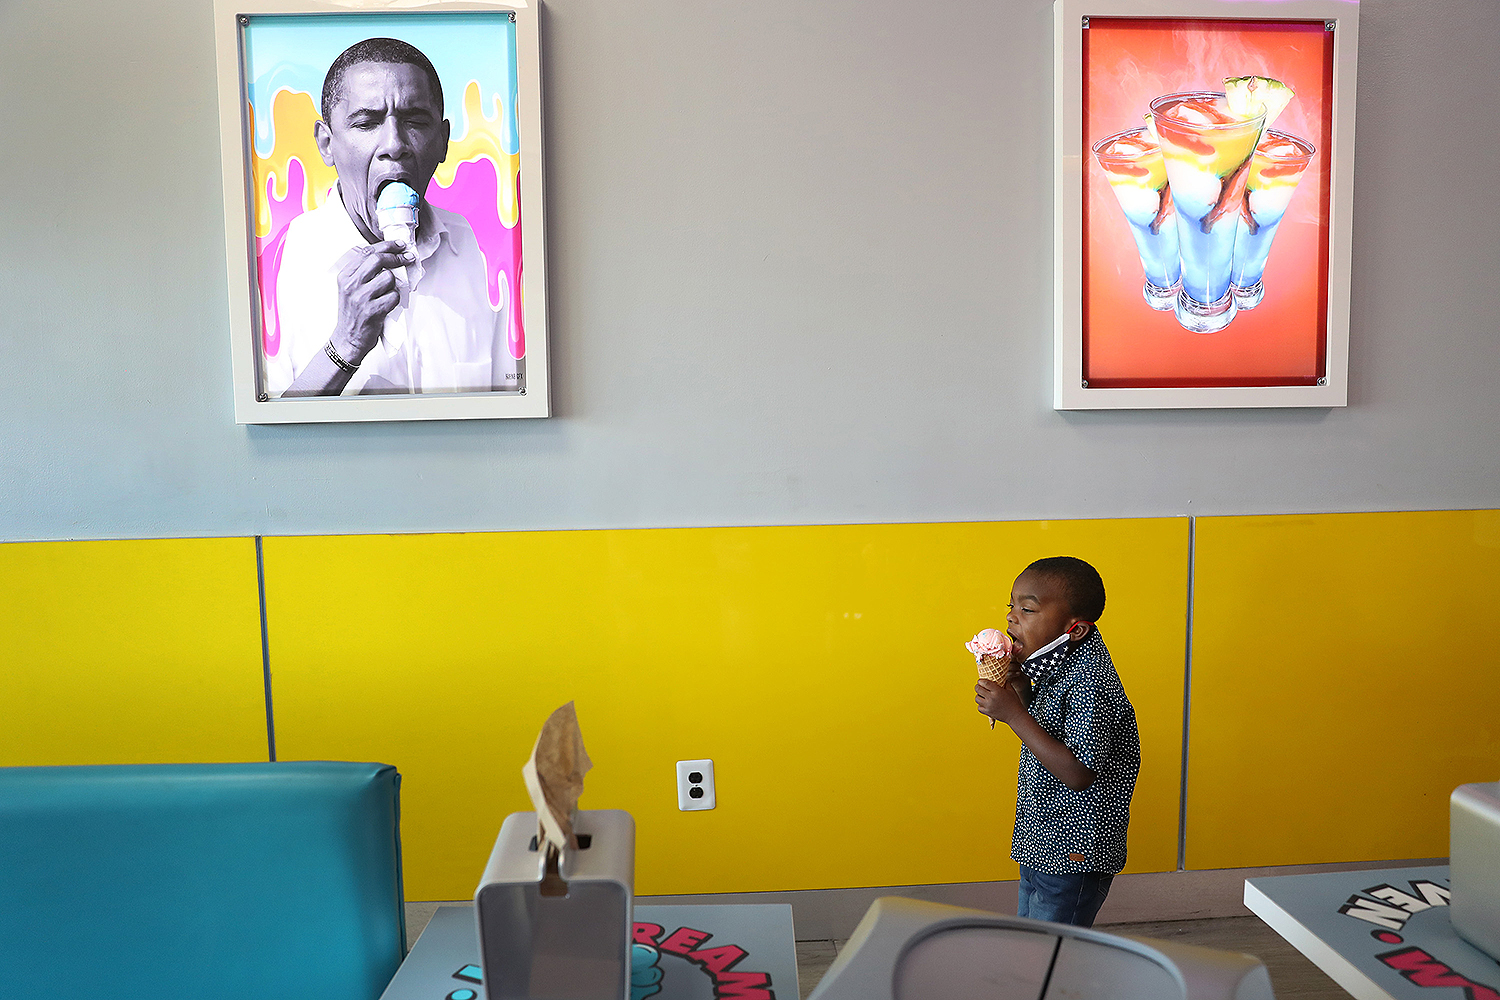 A refreshing treat. Charistan Hood, 4, eats ice cream near a picture of former President Barack Obama at the Black-owned store Ice Cream Heaven in Miami Gardens, Florida, on July 7, Blackout Day. Supporters of Blackout Day committed to spending money only at Black-owned businesses to showcase the economic power of the Black community. Joe Raedle/Getty Images